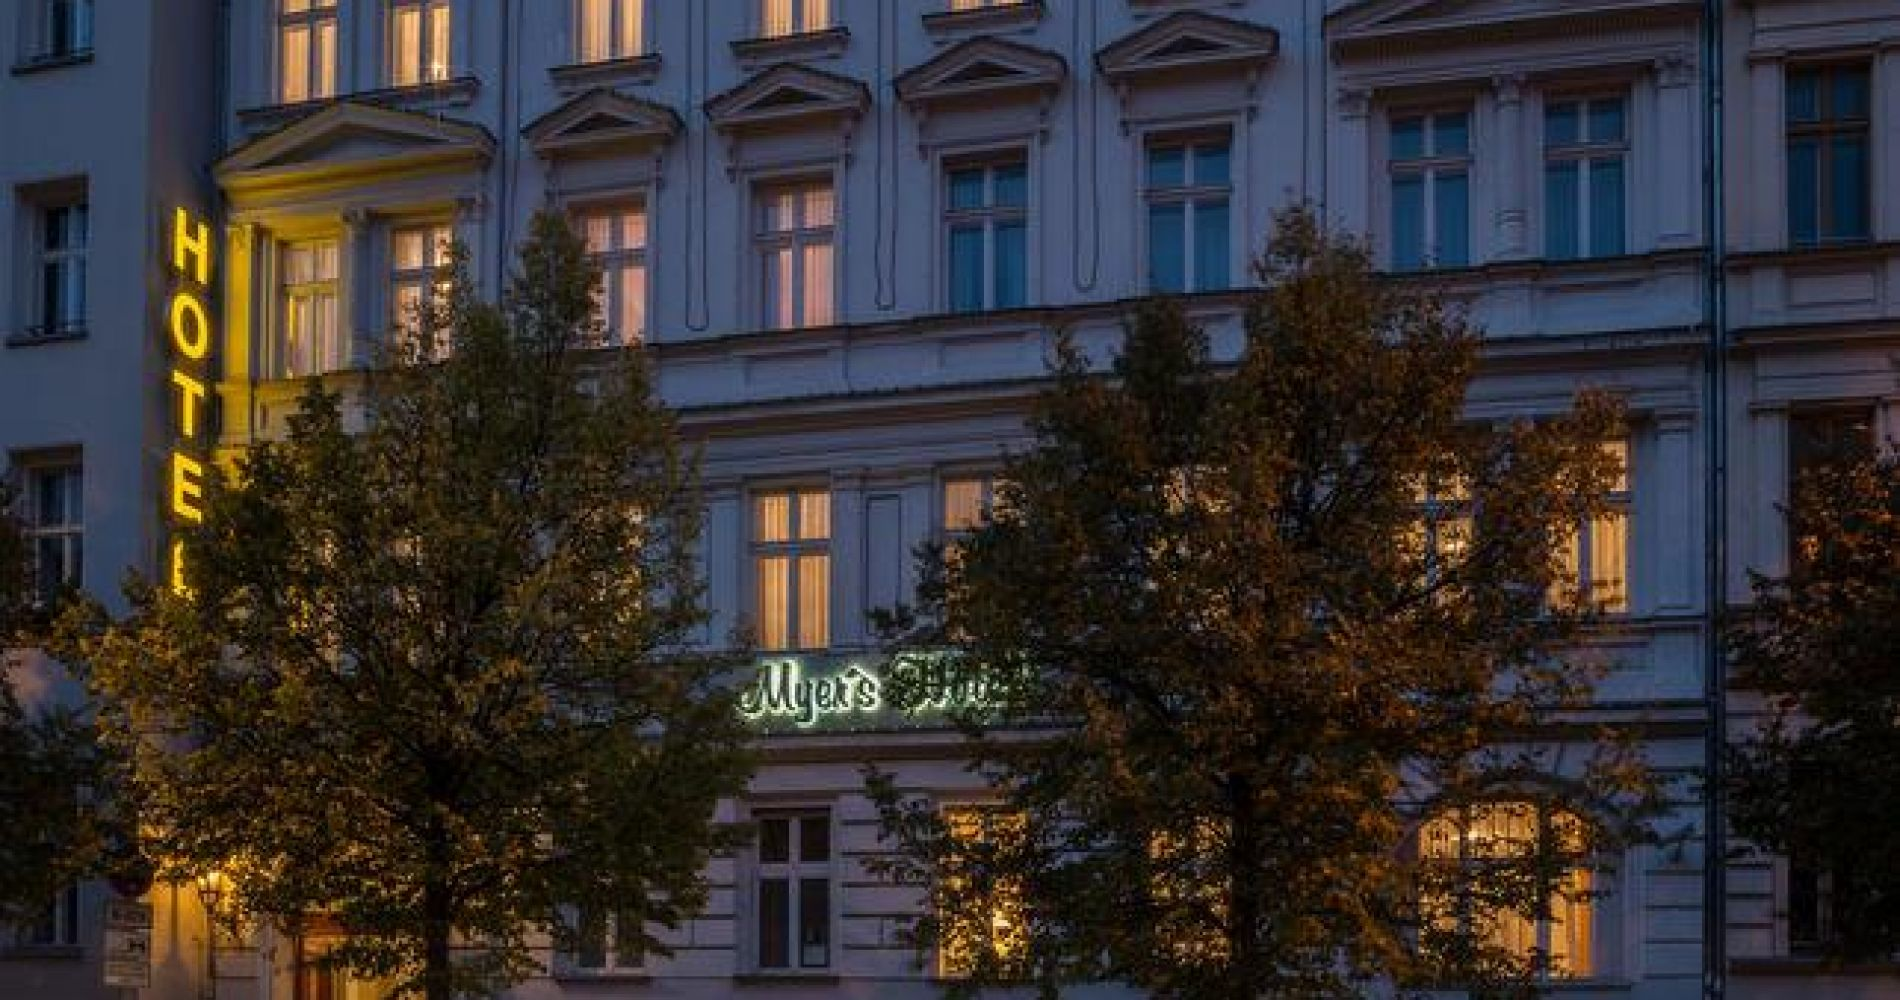 Myer S Hotel Berlin Best Hotels And Overnight Stays By Tinggly